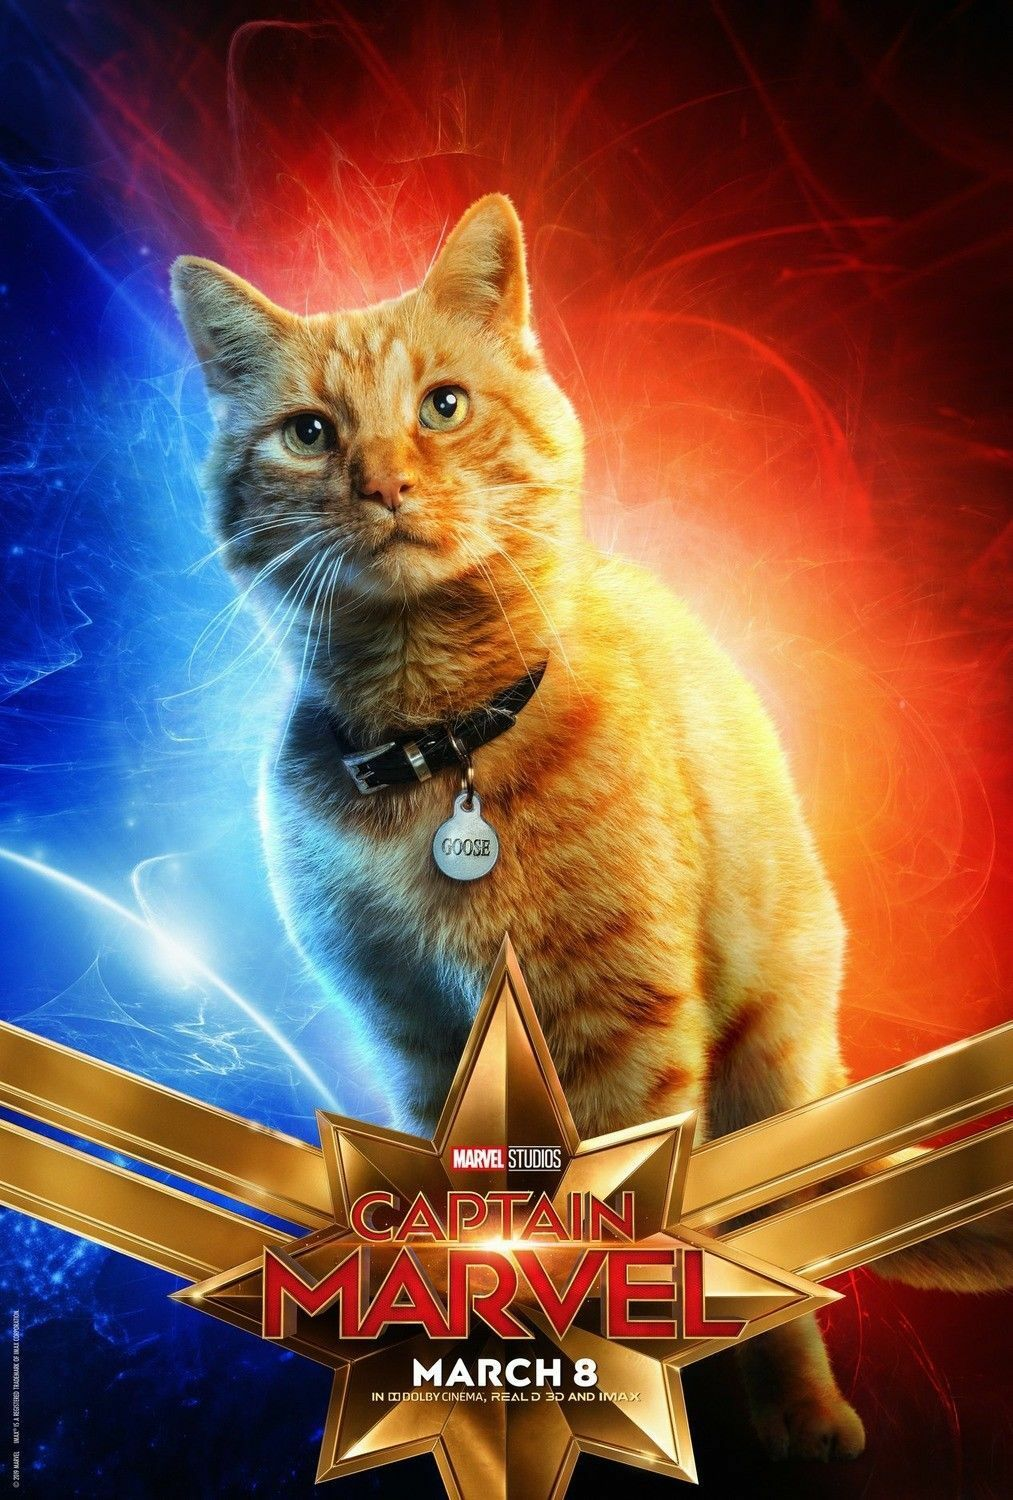 THIS IS THE BEST THING: CAPTAIN MARVEL WEBSITE